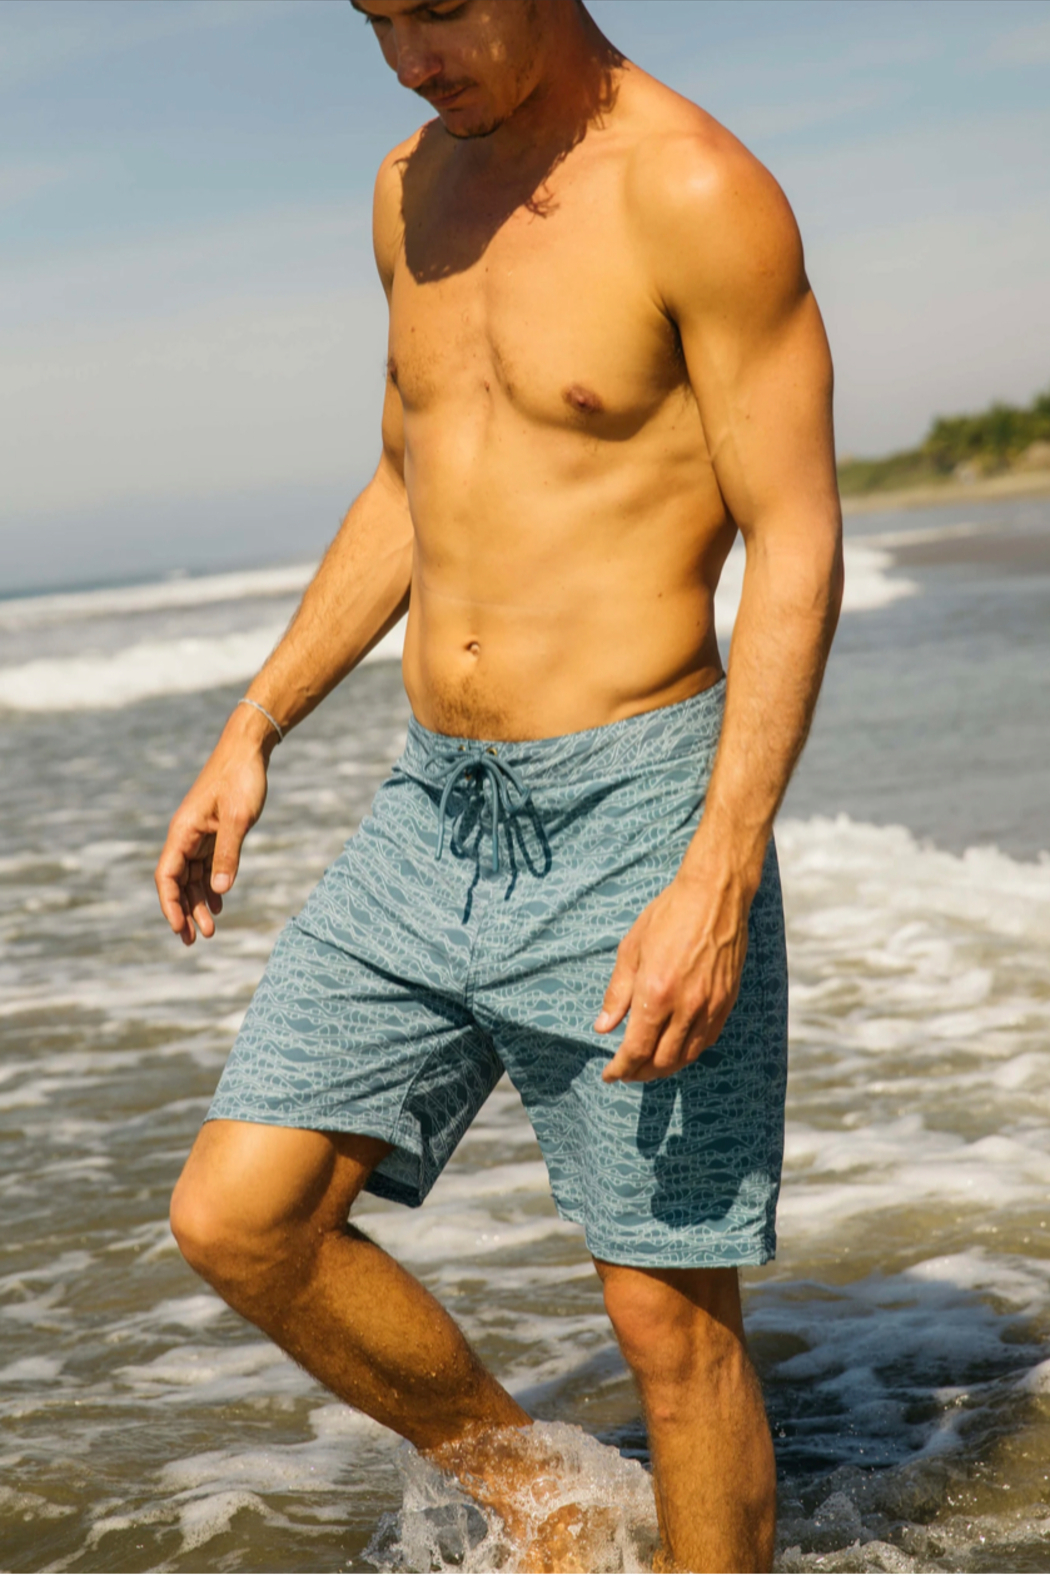 Mollusk Stretch Notched Trunks in Aloha Wave - Main Image